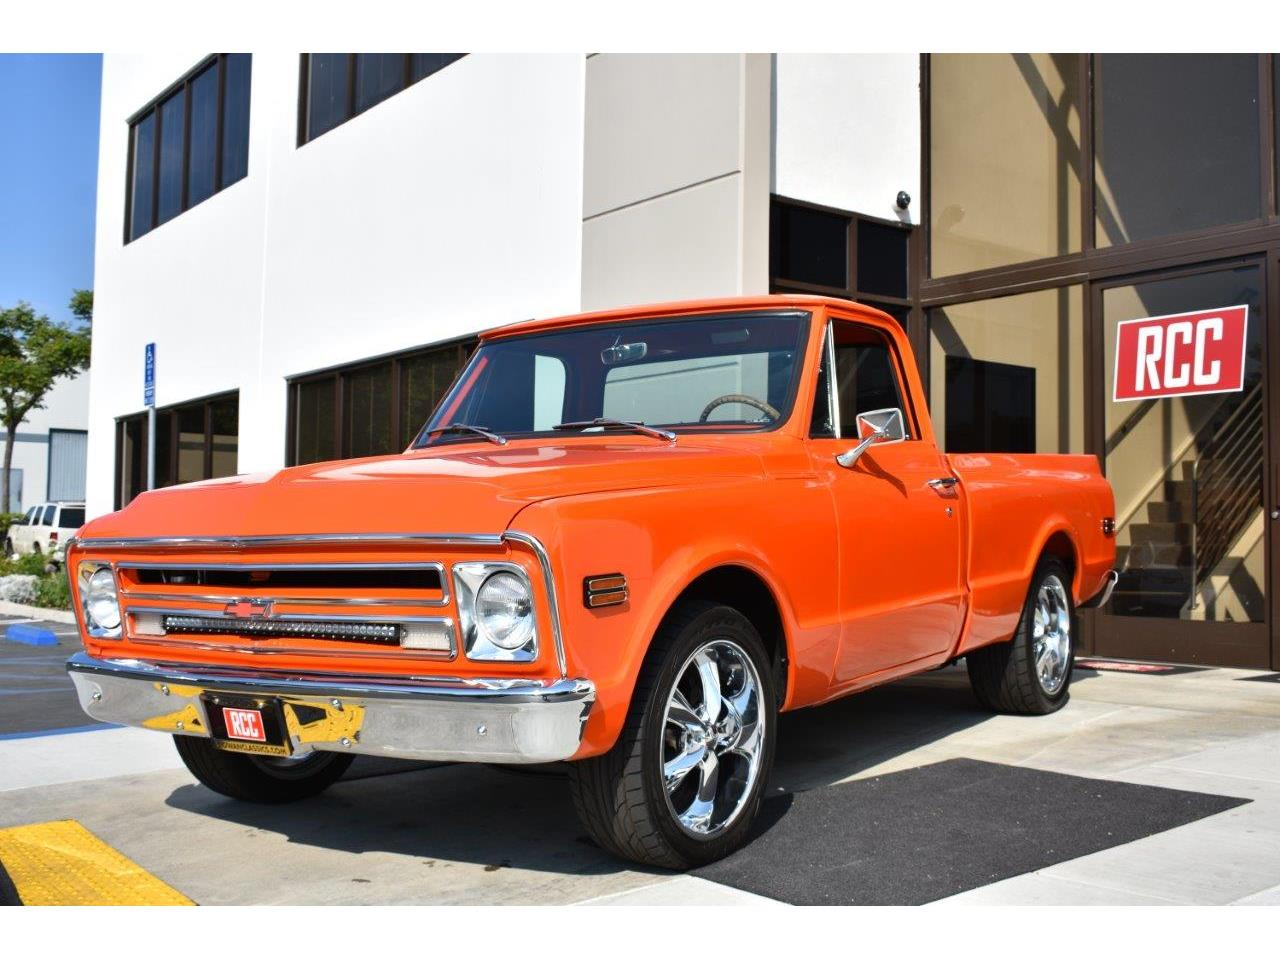 1968 Chevrolet C10 For Sale Cc 1056605 Chevy Truck 50th Anniversary Large Picture Of 4388800 Offered By Radwan Classic Cars Mna5